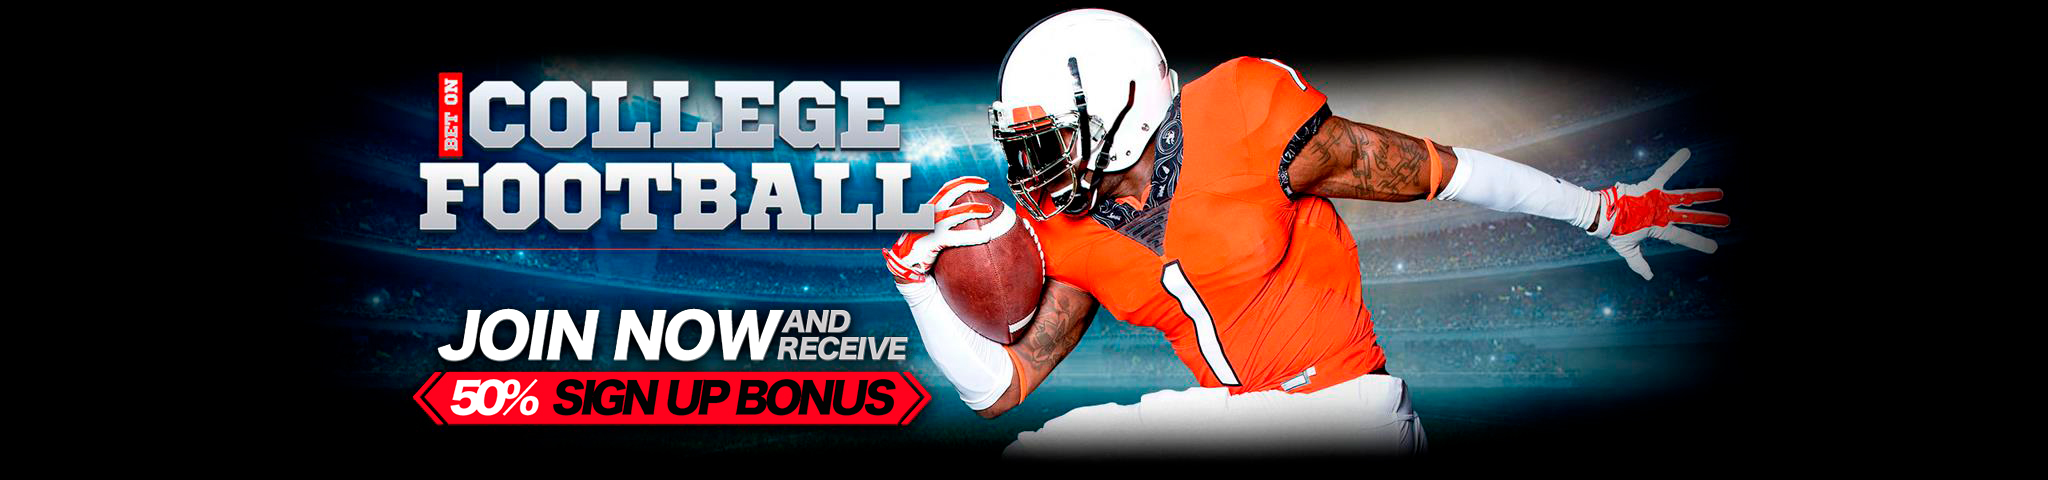 College Football Finally Here 50% Bonus